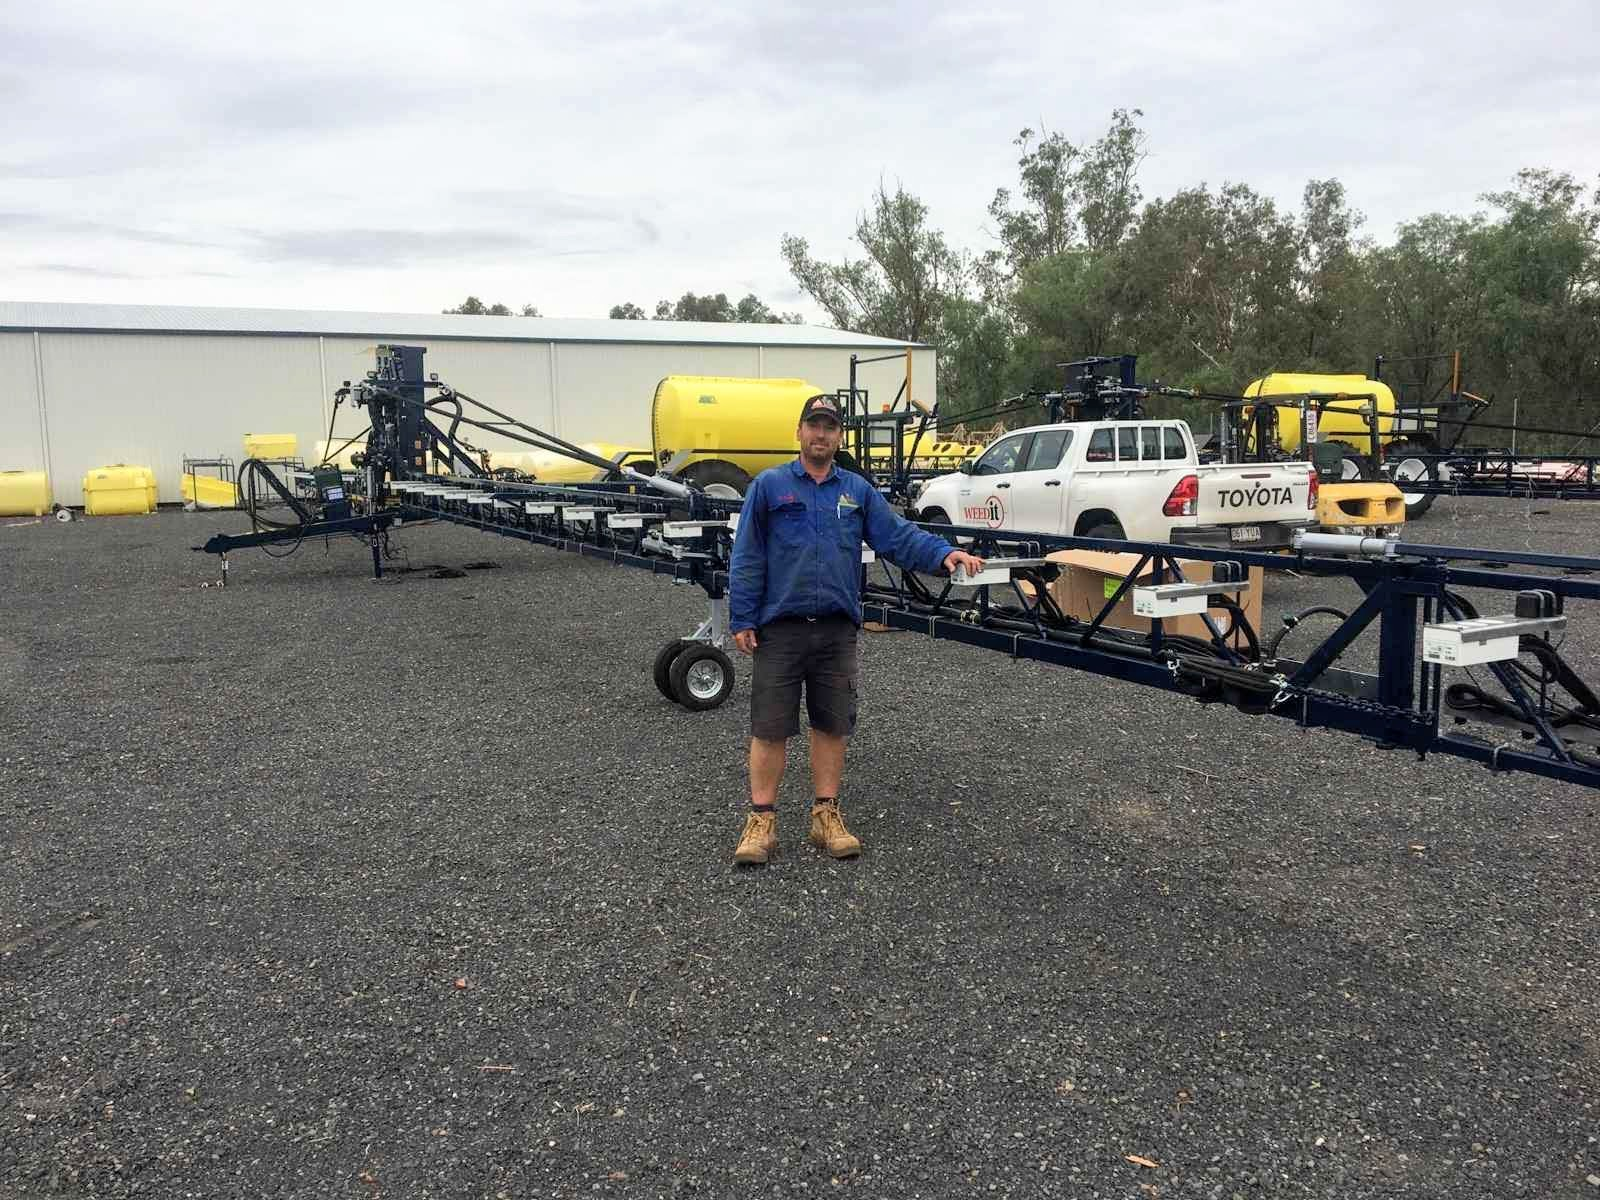 Vertical iHSD test results and the WEEDit